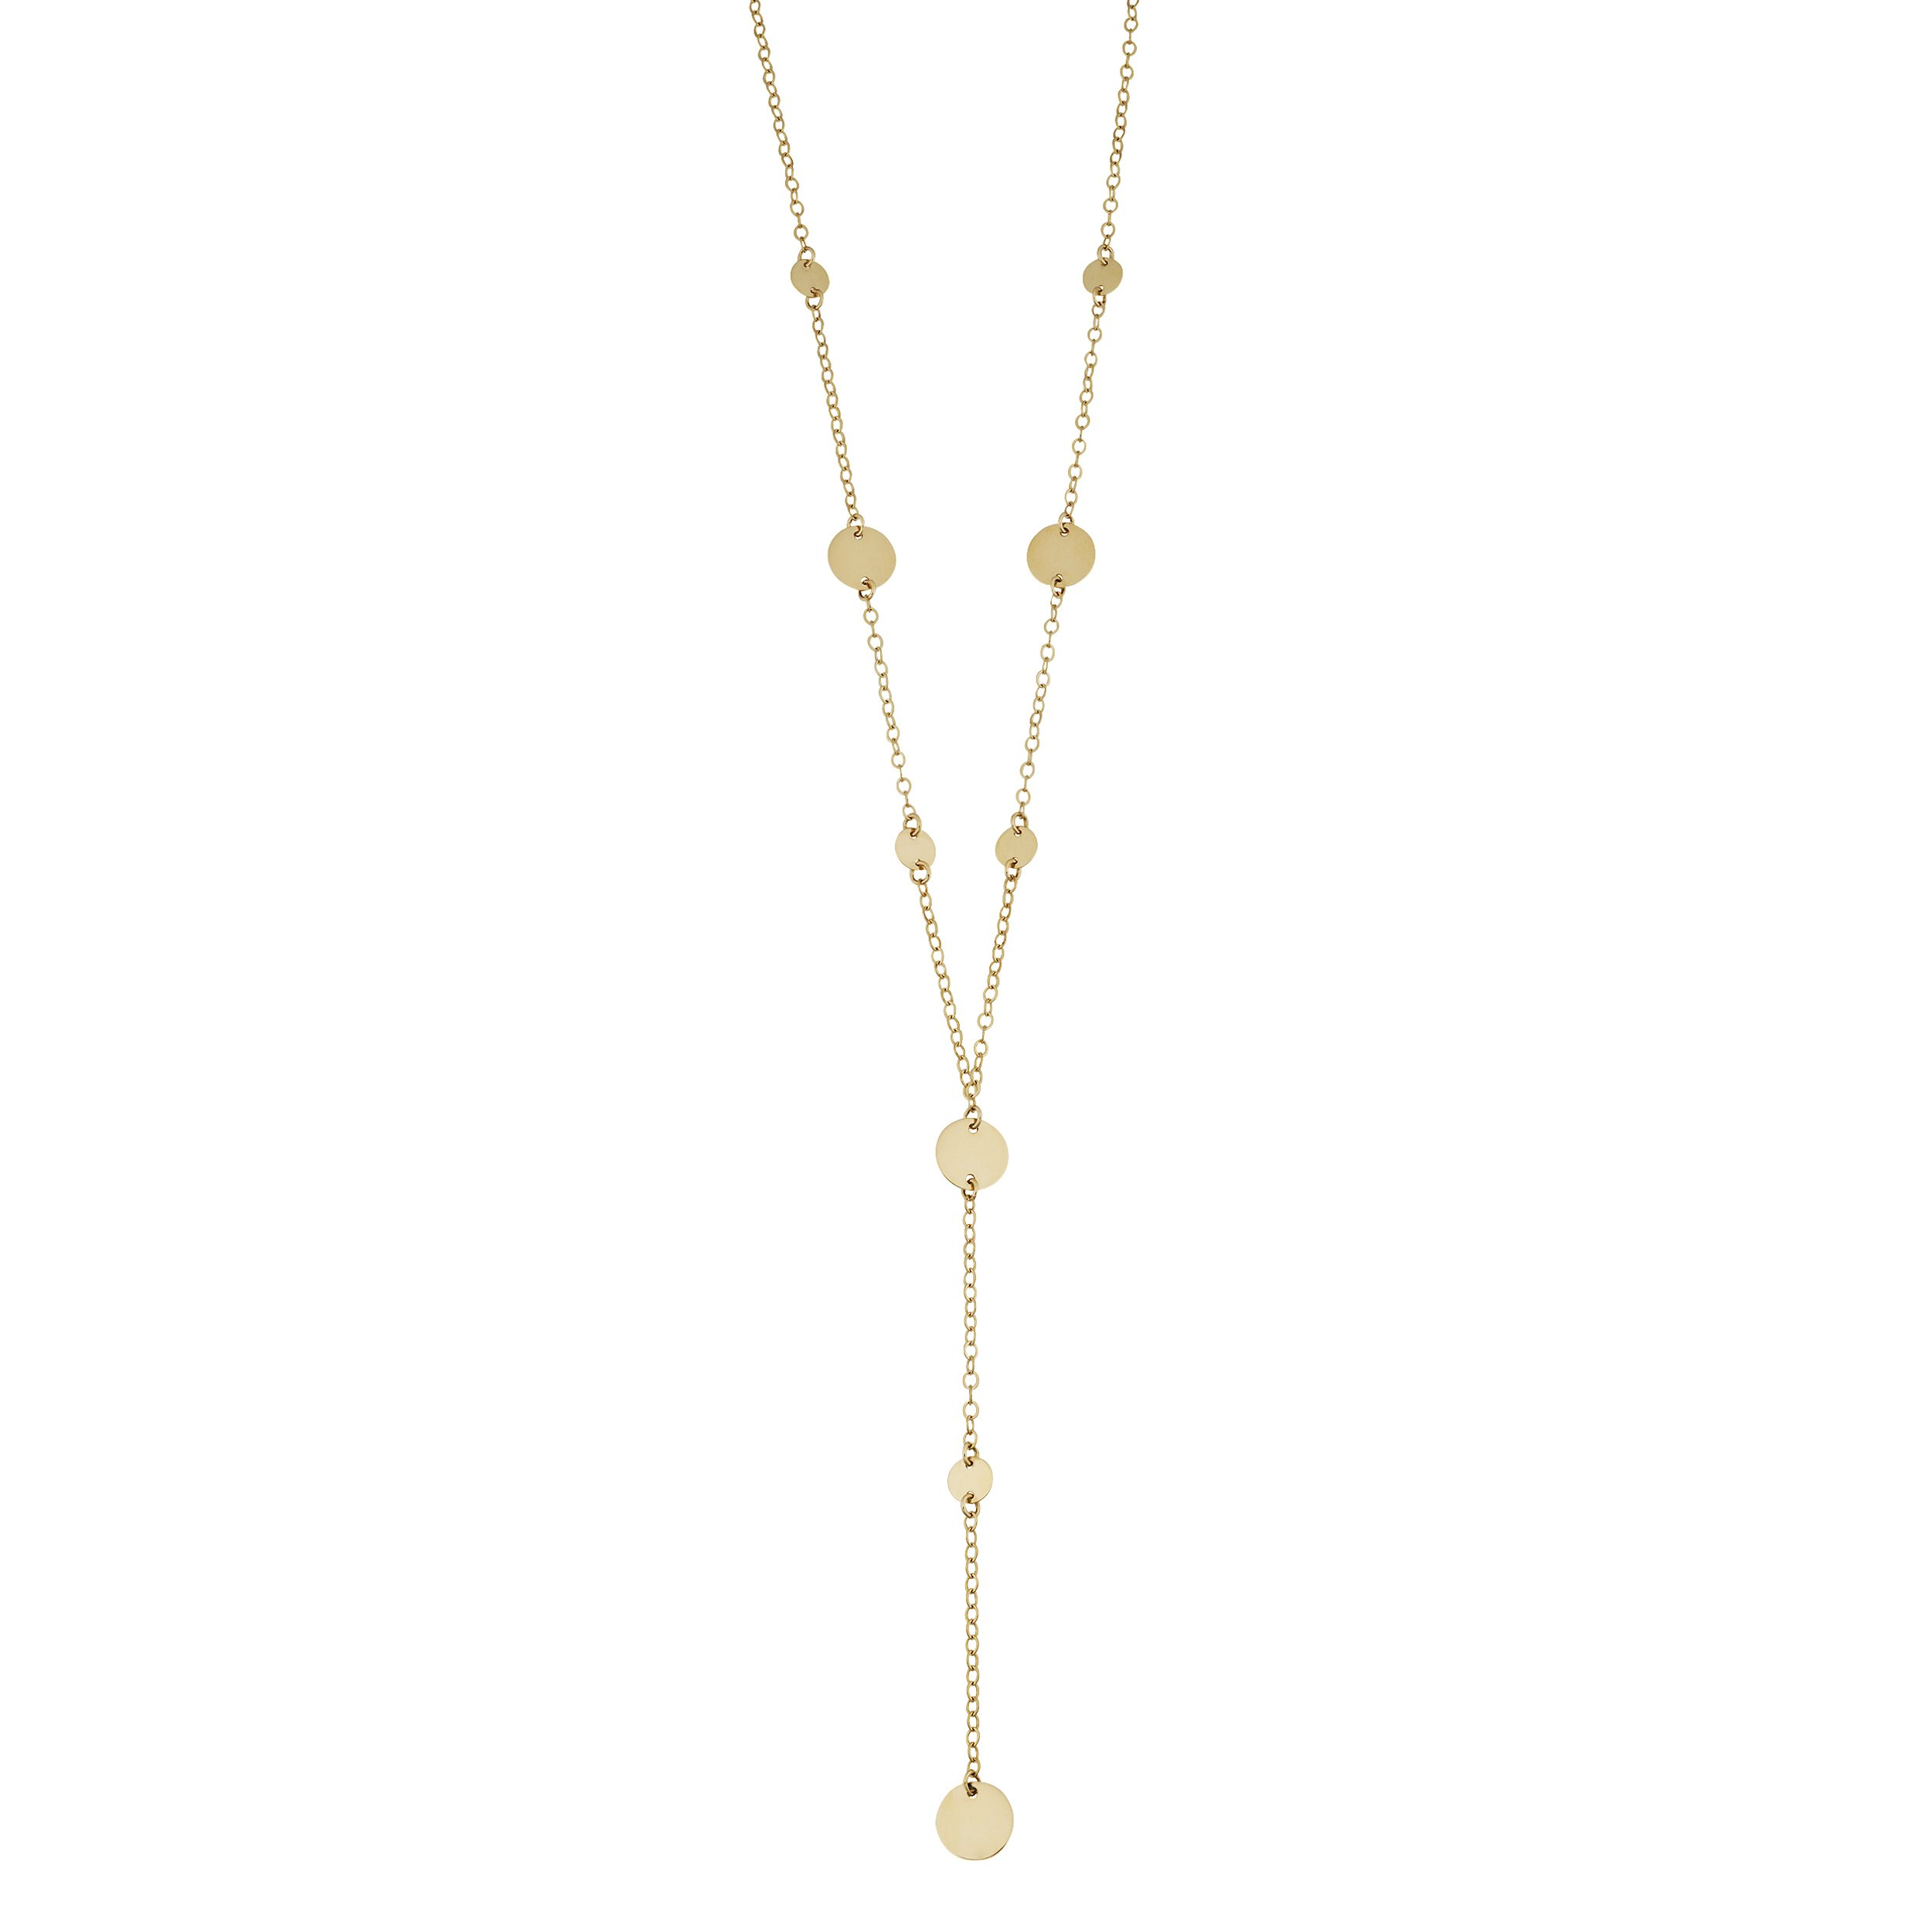 Kooljewelry 14k Yellow Gold Disc Station Lariat Necklace (18 inch)